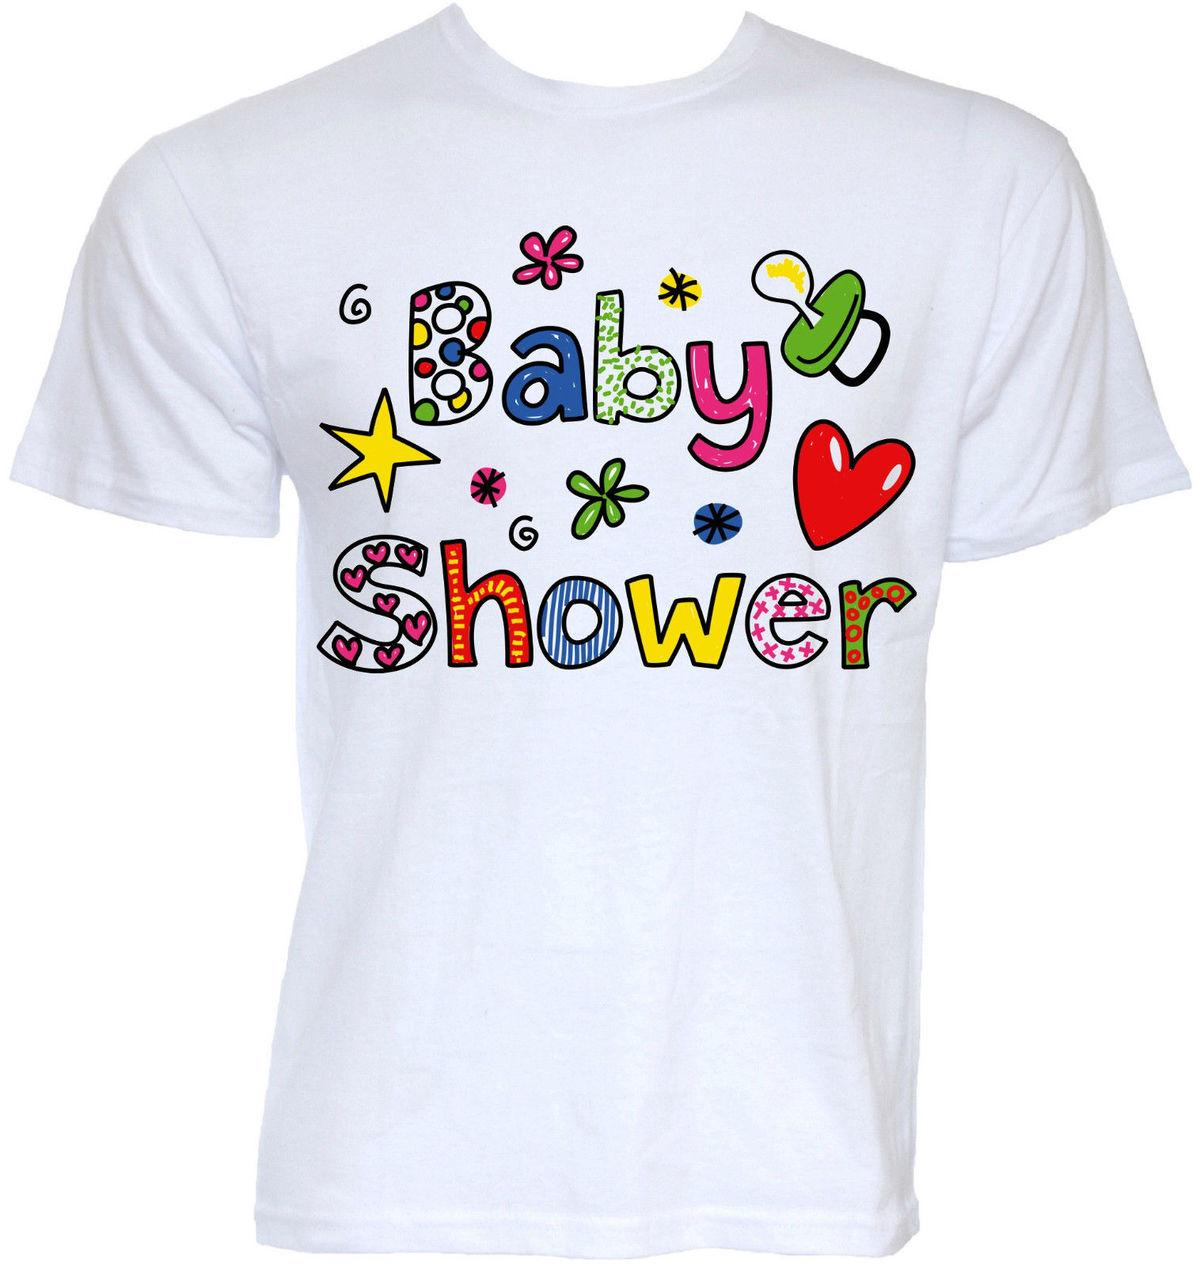 FUNNY COOL NOVELTY NEW BABY SHOWER MUM PREGNANCY JOKE T SHIRTS MUMMY GIFTS  IDEAS T Shirts Casual Brand Clothing Cotton Humor T Shirts Funky T Shirt  From ...